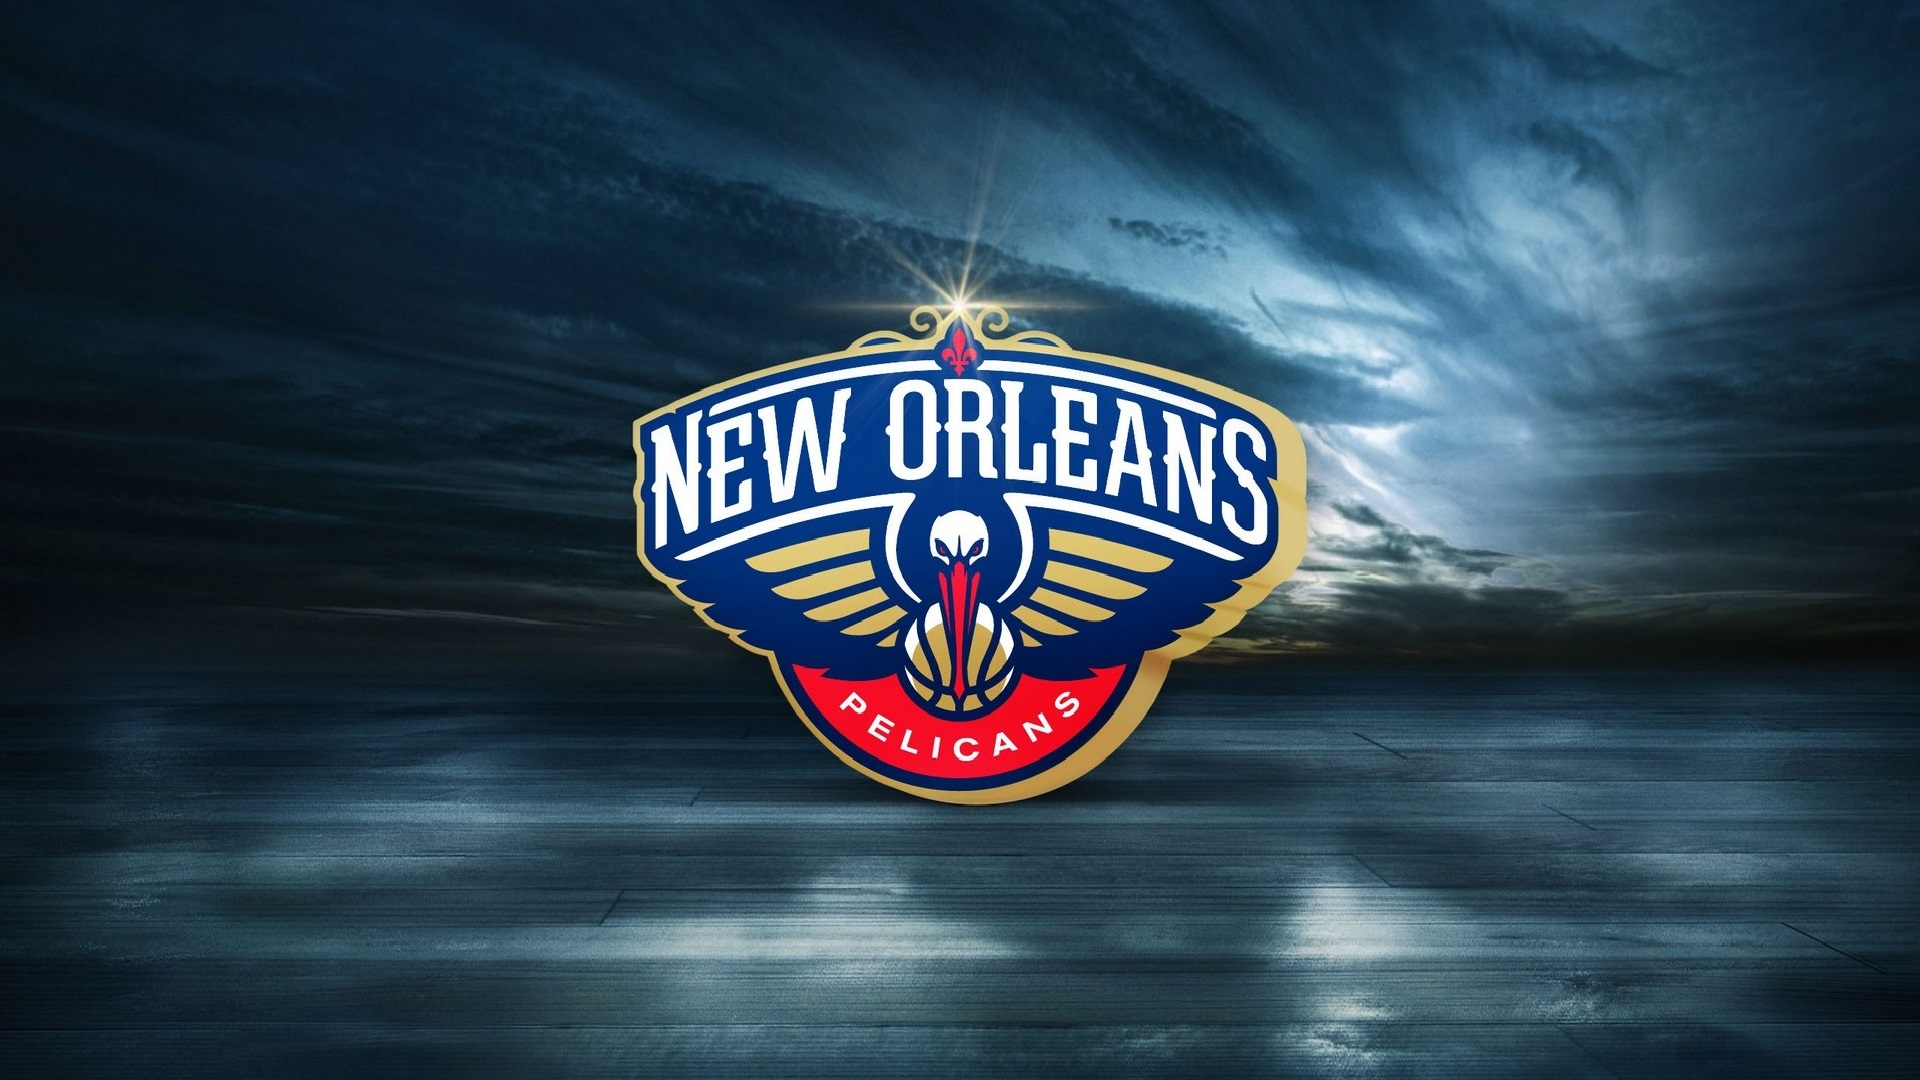 HD New Orleans Pelicans Backgrounds with high-resolution 1920x1080 pixel. You can use this wallpaper for your Desktop Computer Backgrounds, Windows or Mac Screensavers, iPhone Lock screen, Tablet or Android and another Mobile Phone device